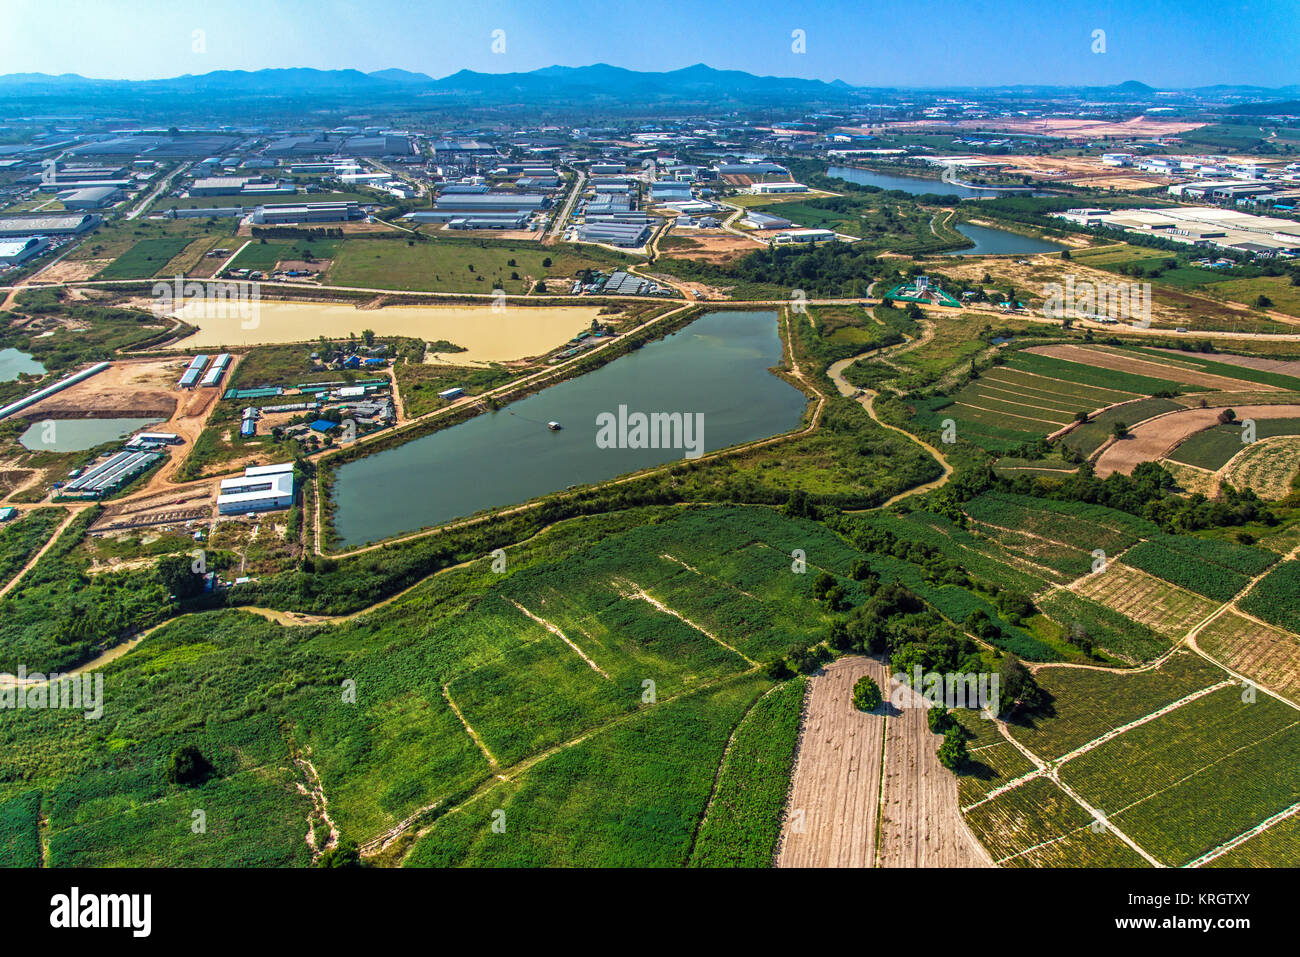 Industrial Estate Land Development Water Reservoir Farming aerial view - Stock Image